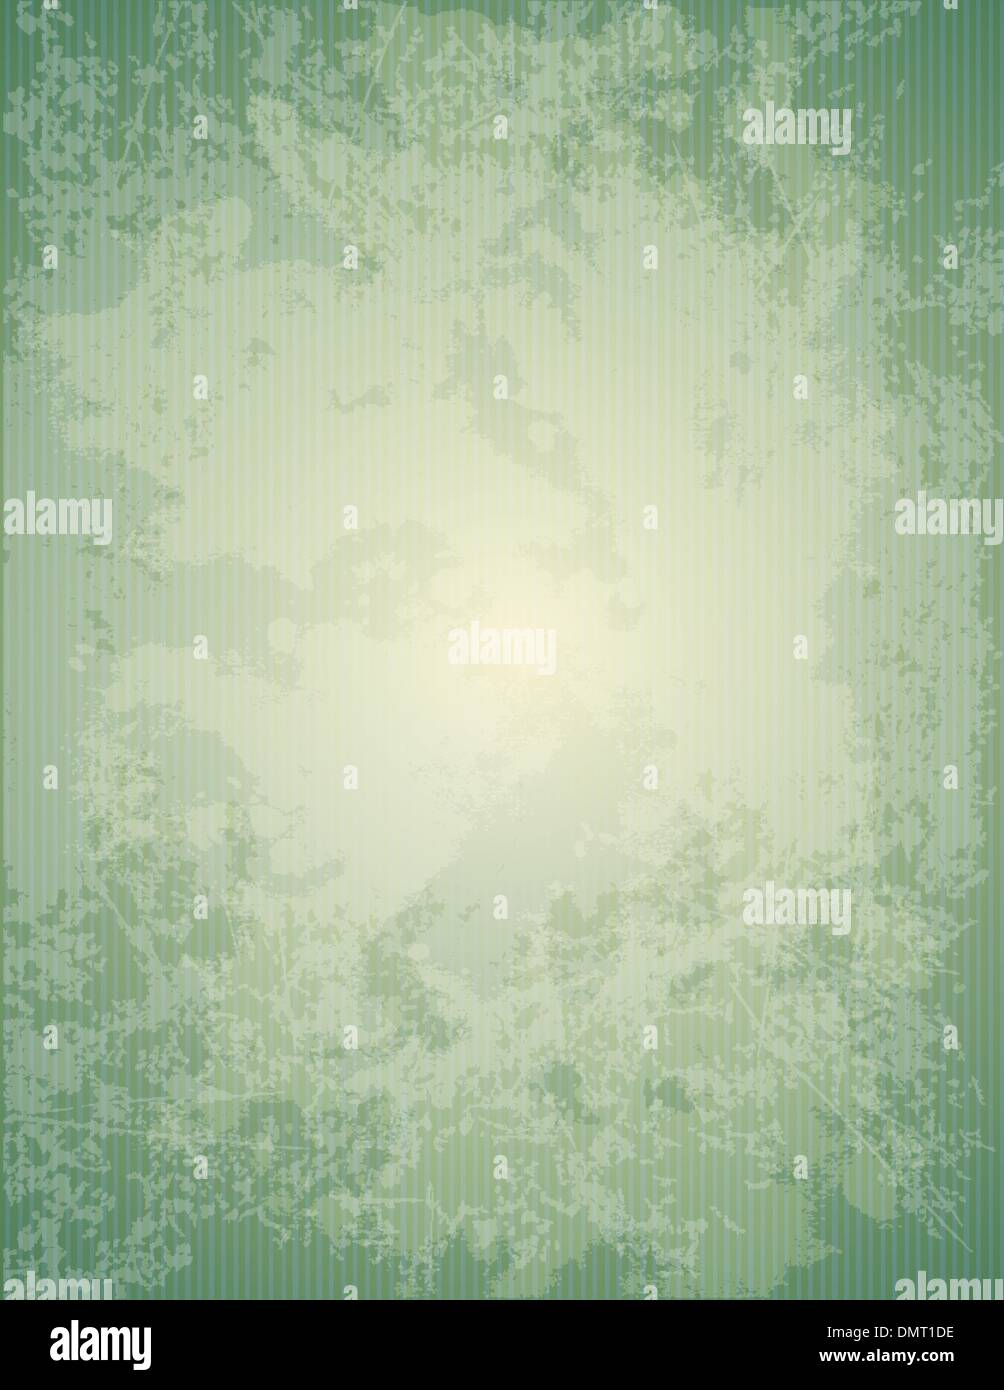 Green old paper texture - Stock Image